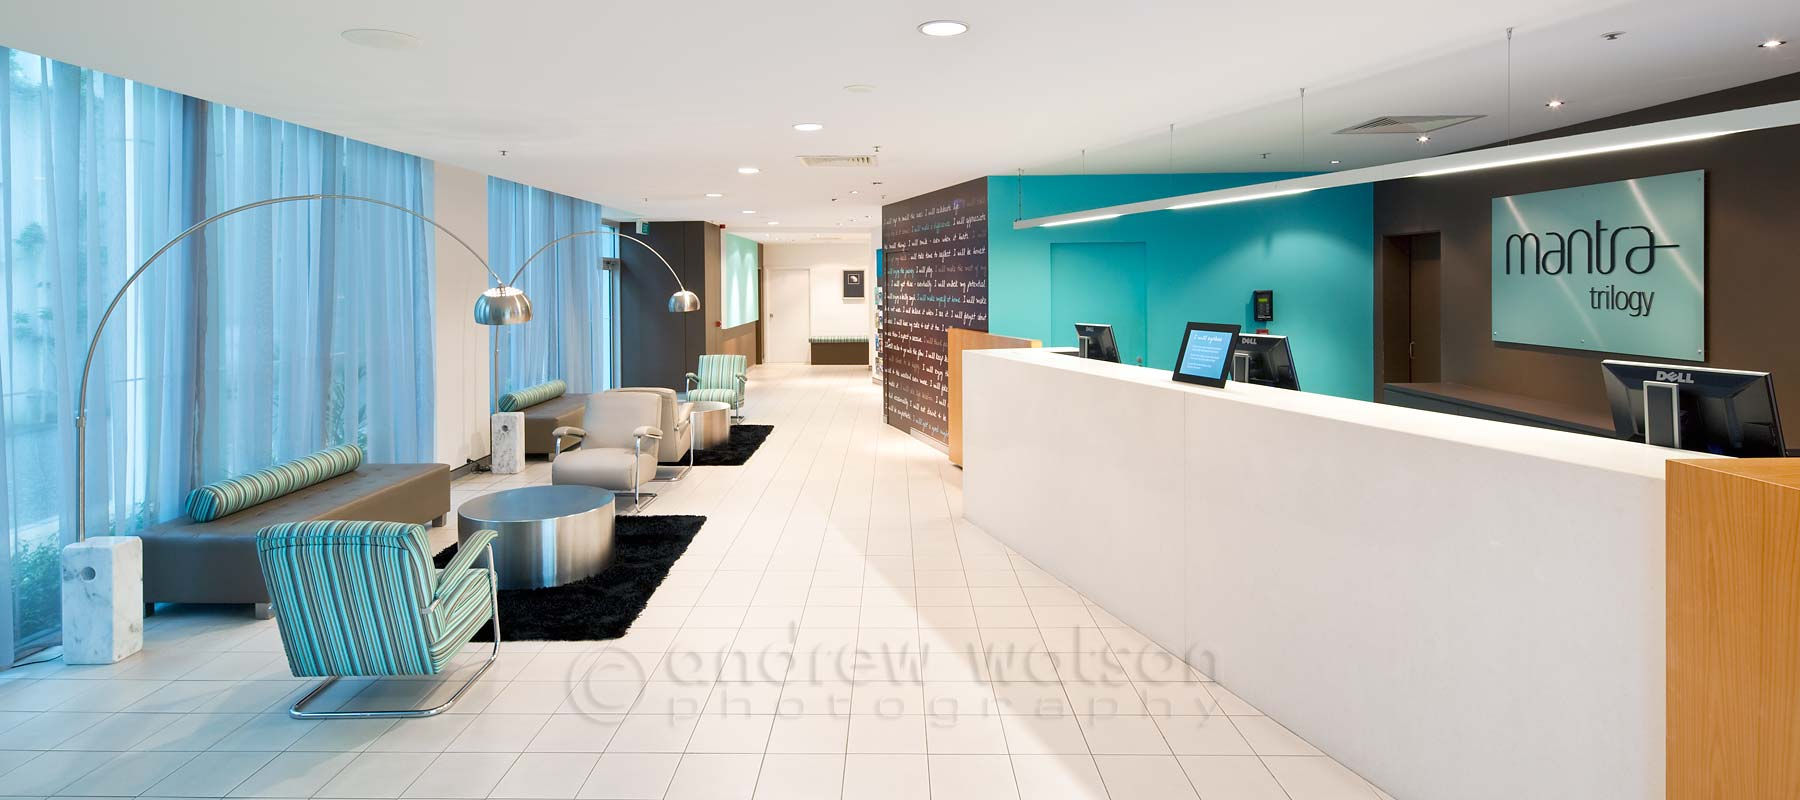 Hotel photography - Mantra Trilogy, Cairns